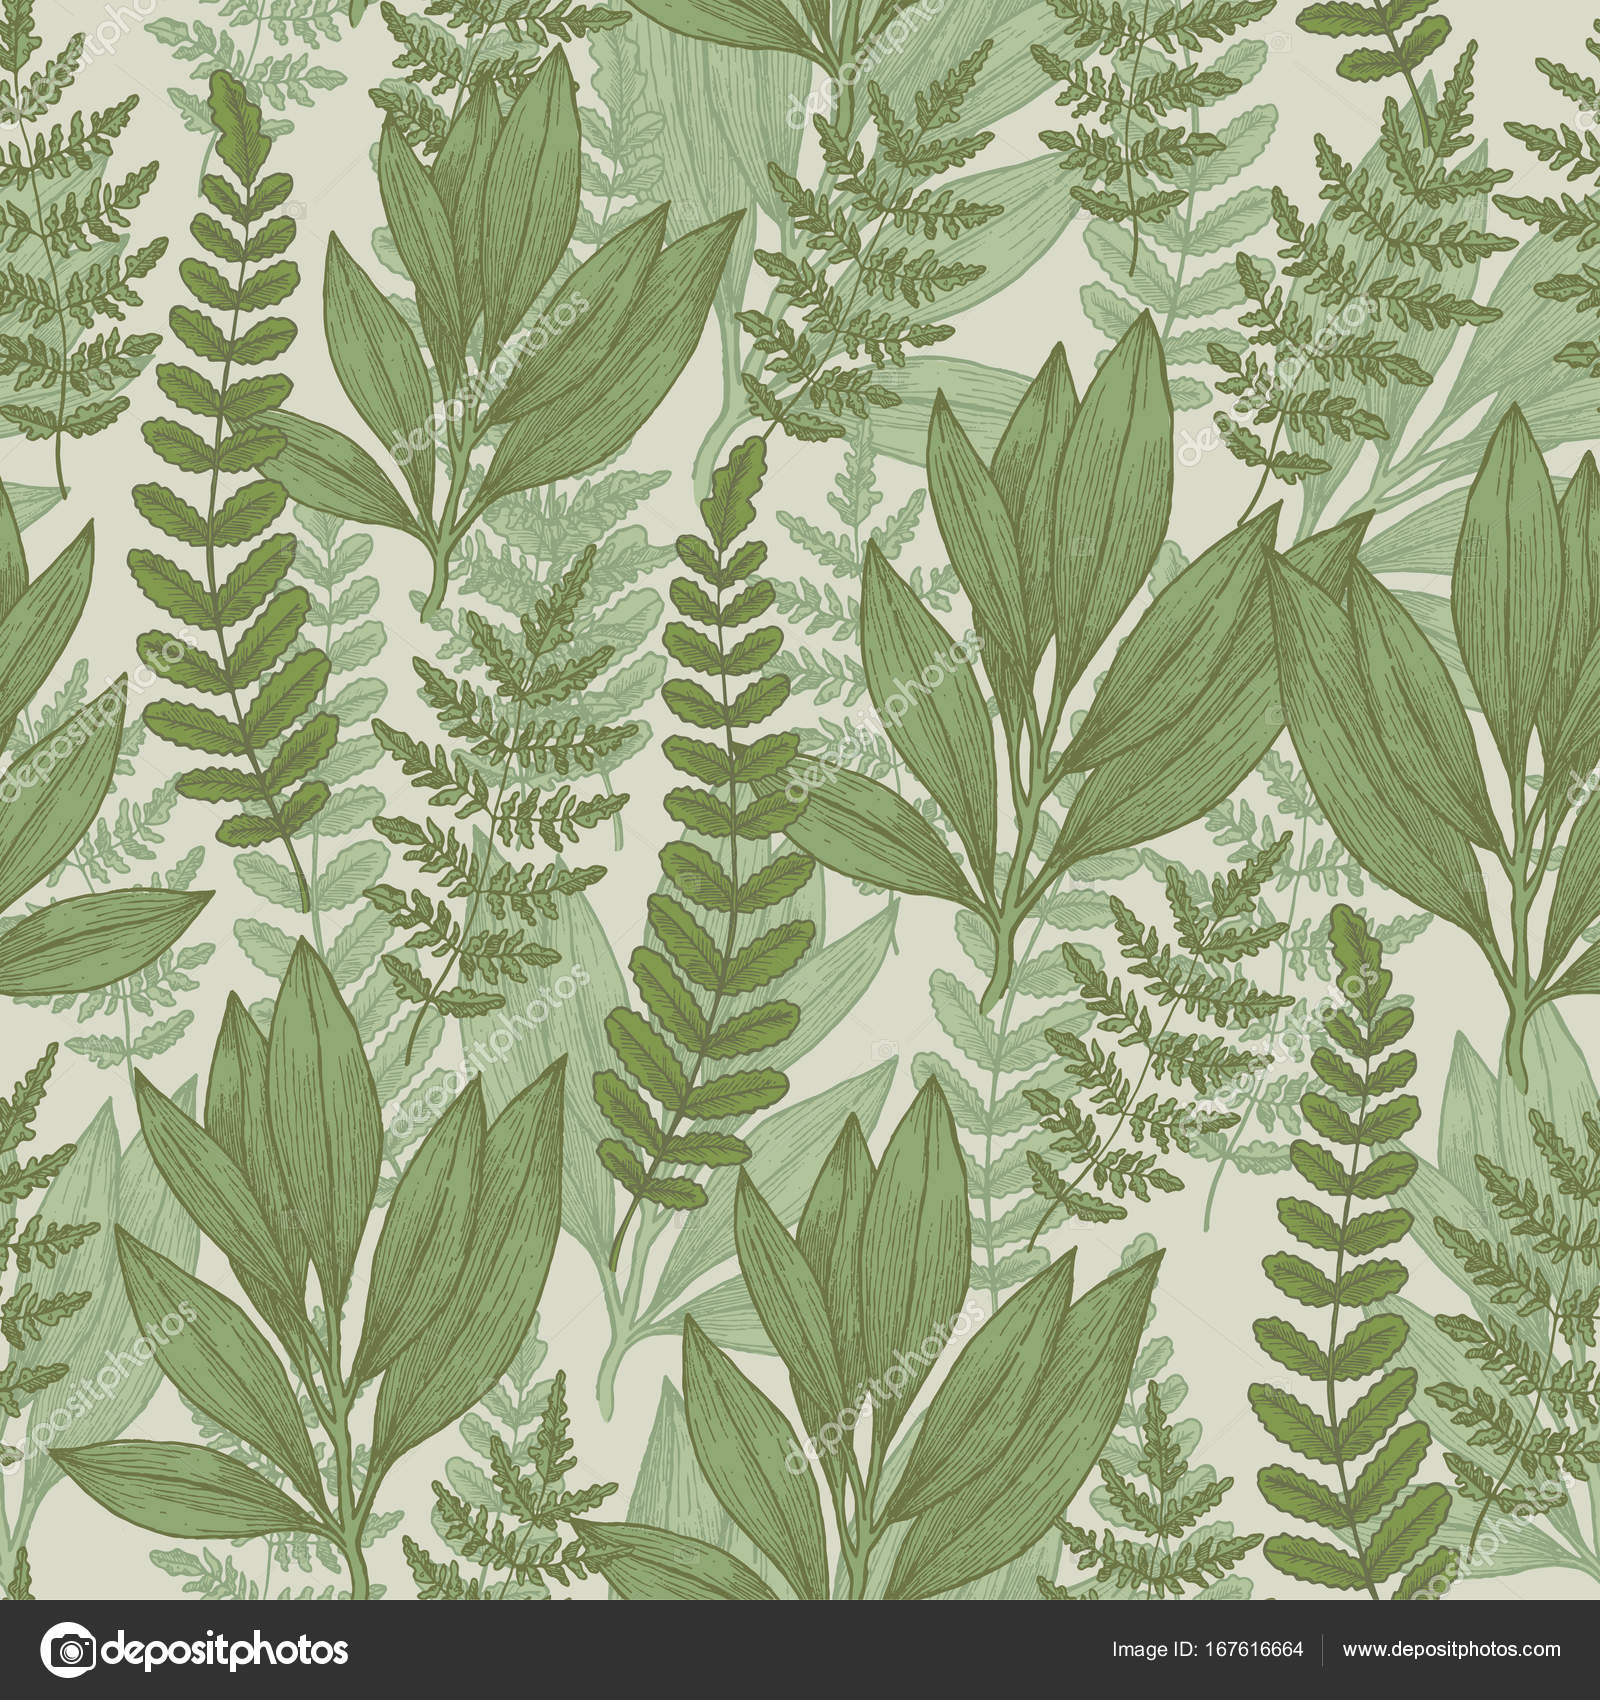 Wild Plants Seamless Pattern Vintage Floral Background Vector Illustration Vector Image By C Adehoidar Vector Stock 167616664